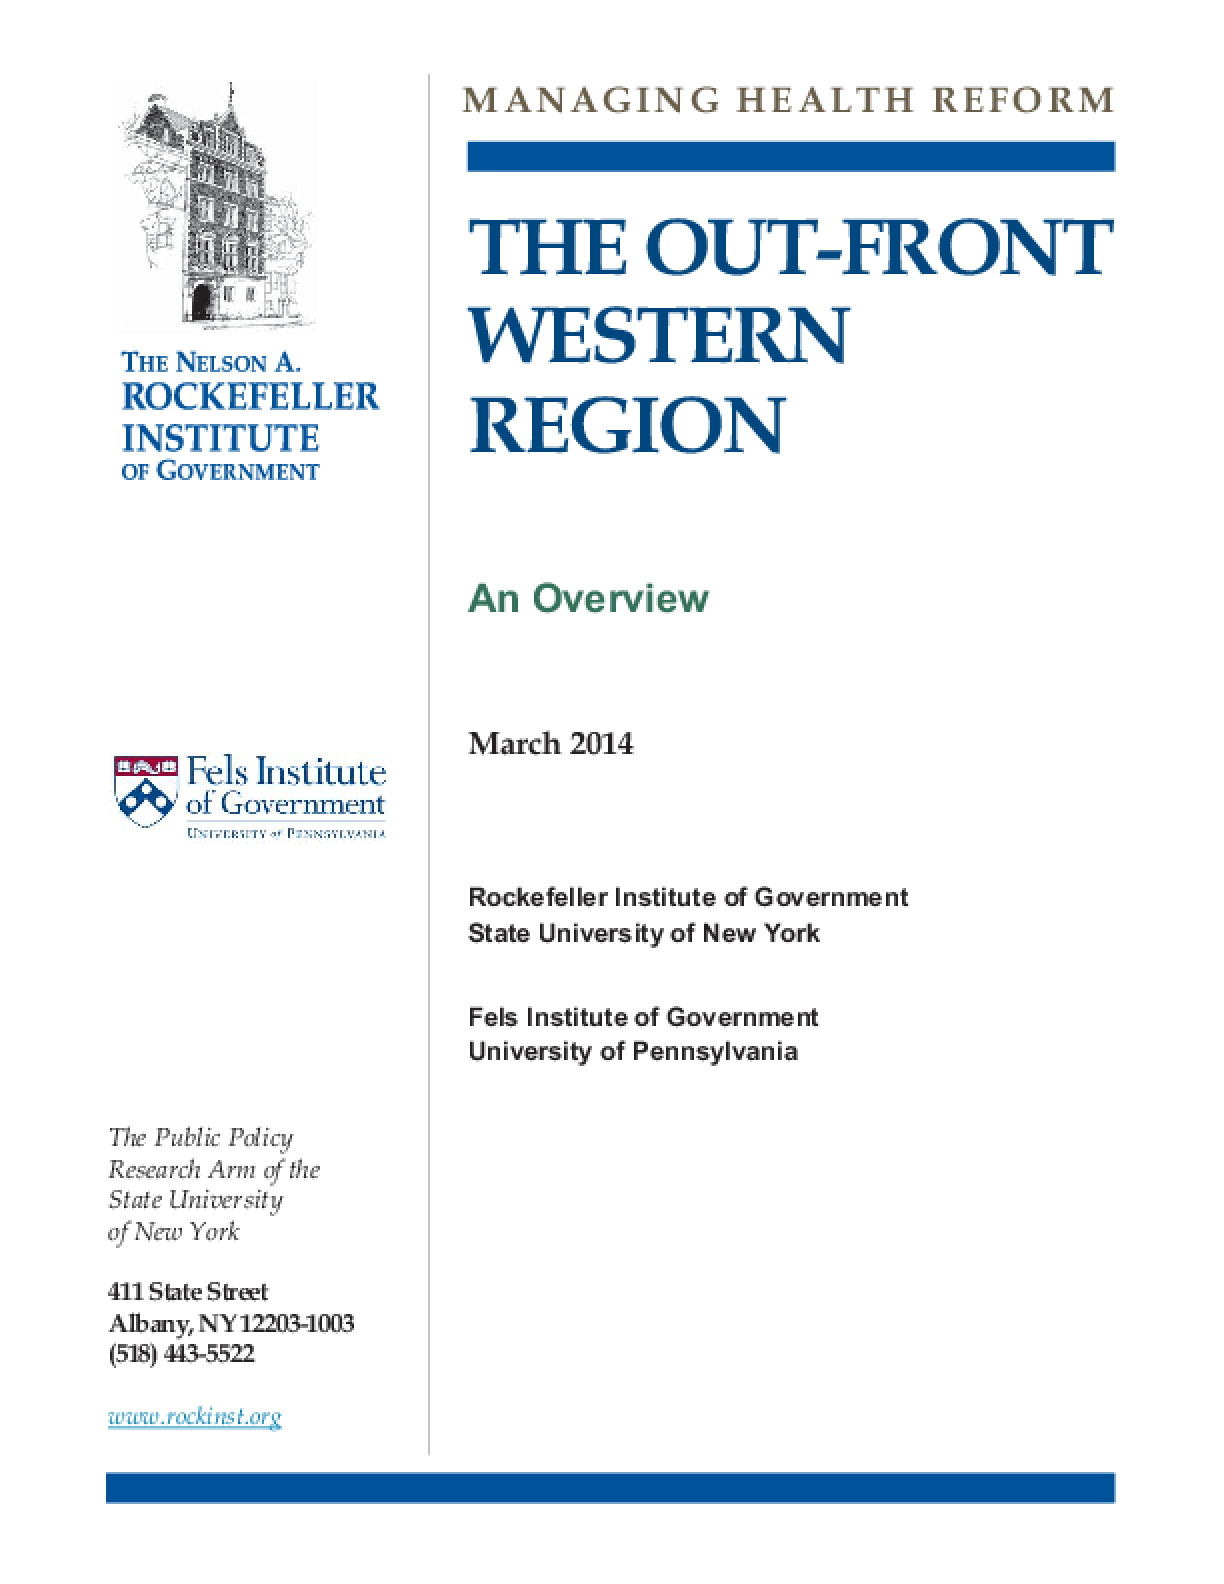 The Out-Front Western Region: An Overview